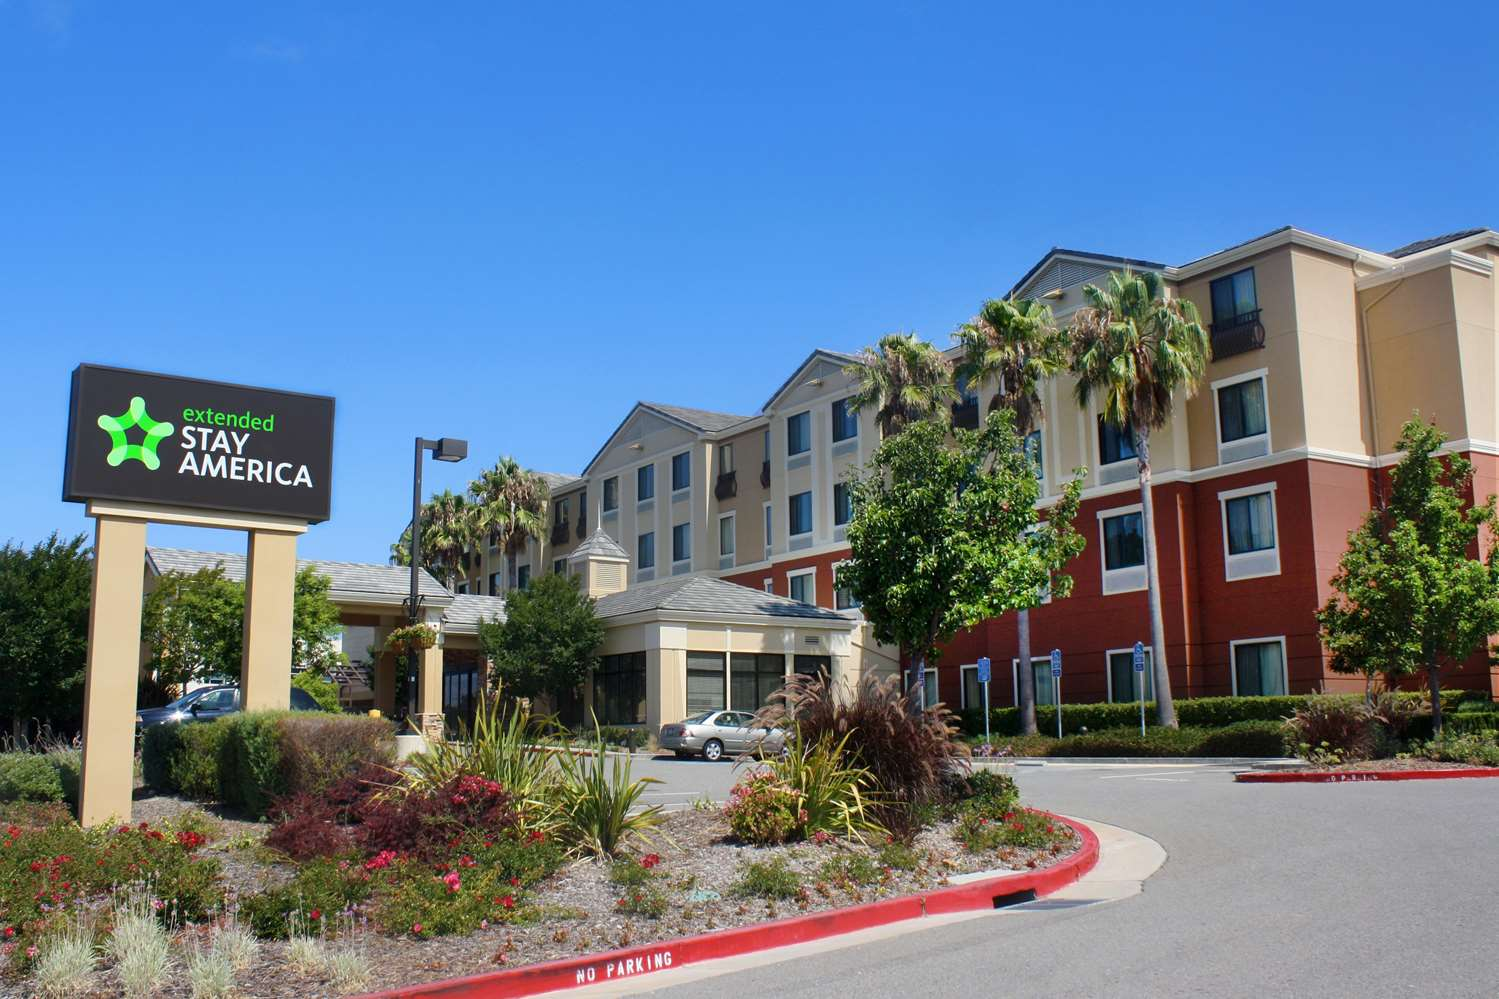 Extended Stay America Hotel San Rafael